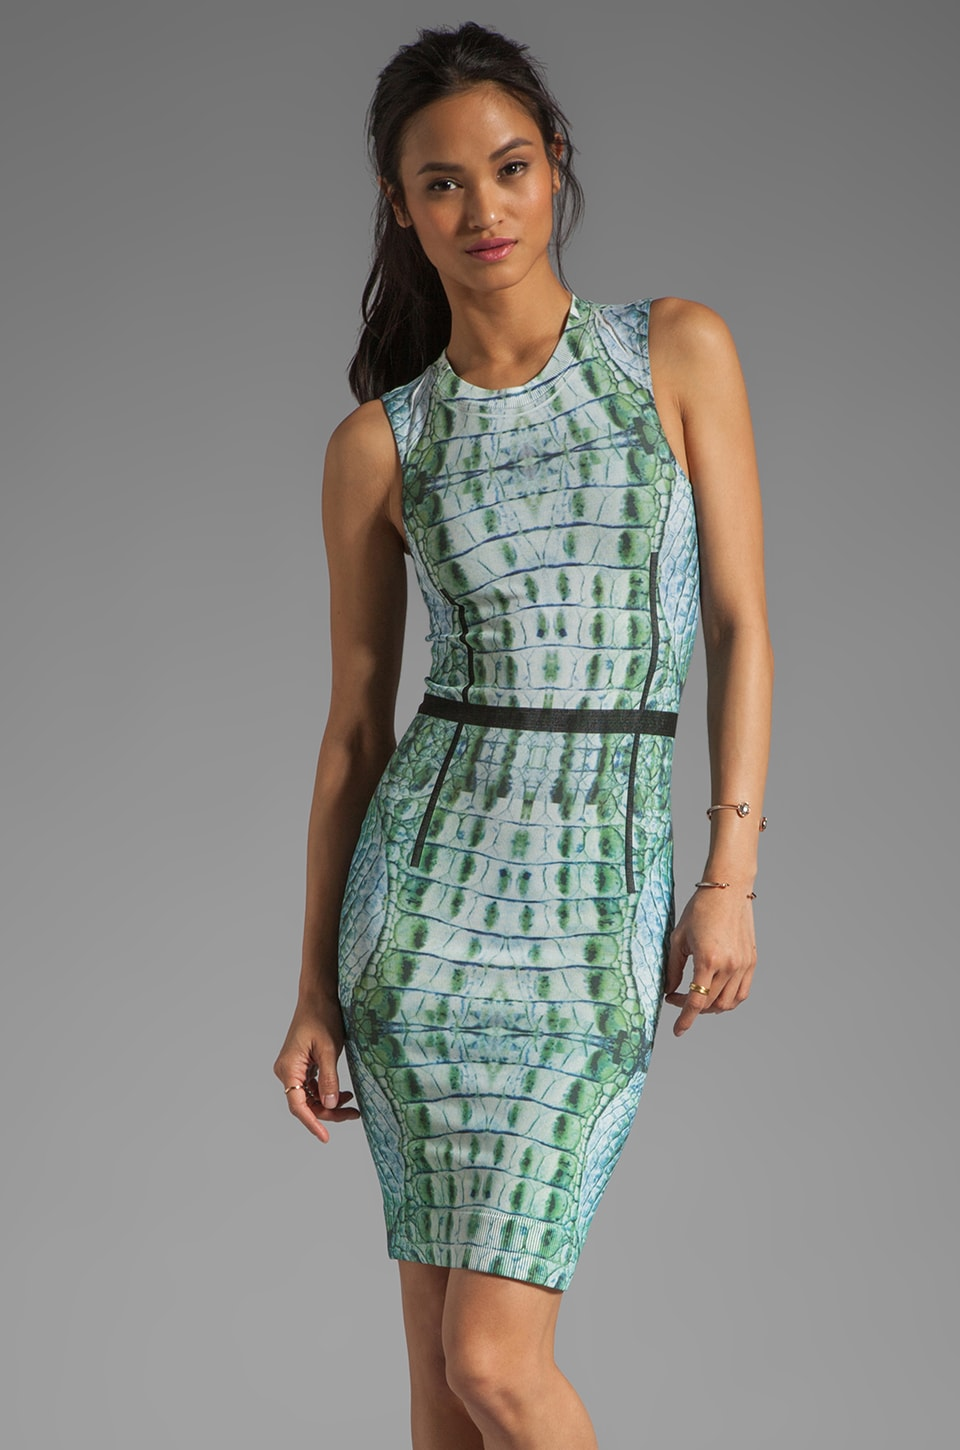 Thatcher Trace Sleeveless Dress in Croc Skin